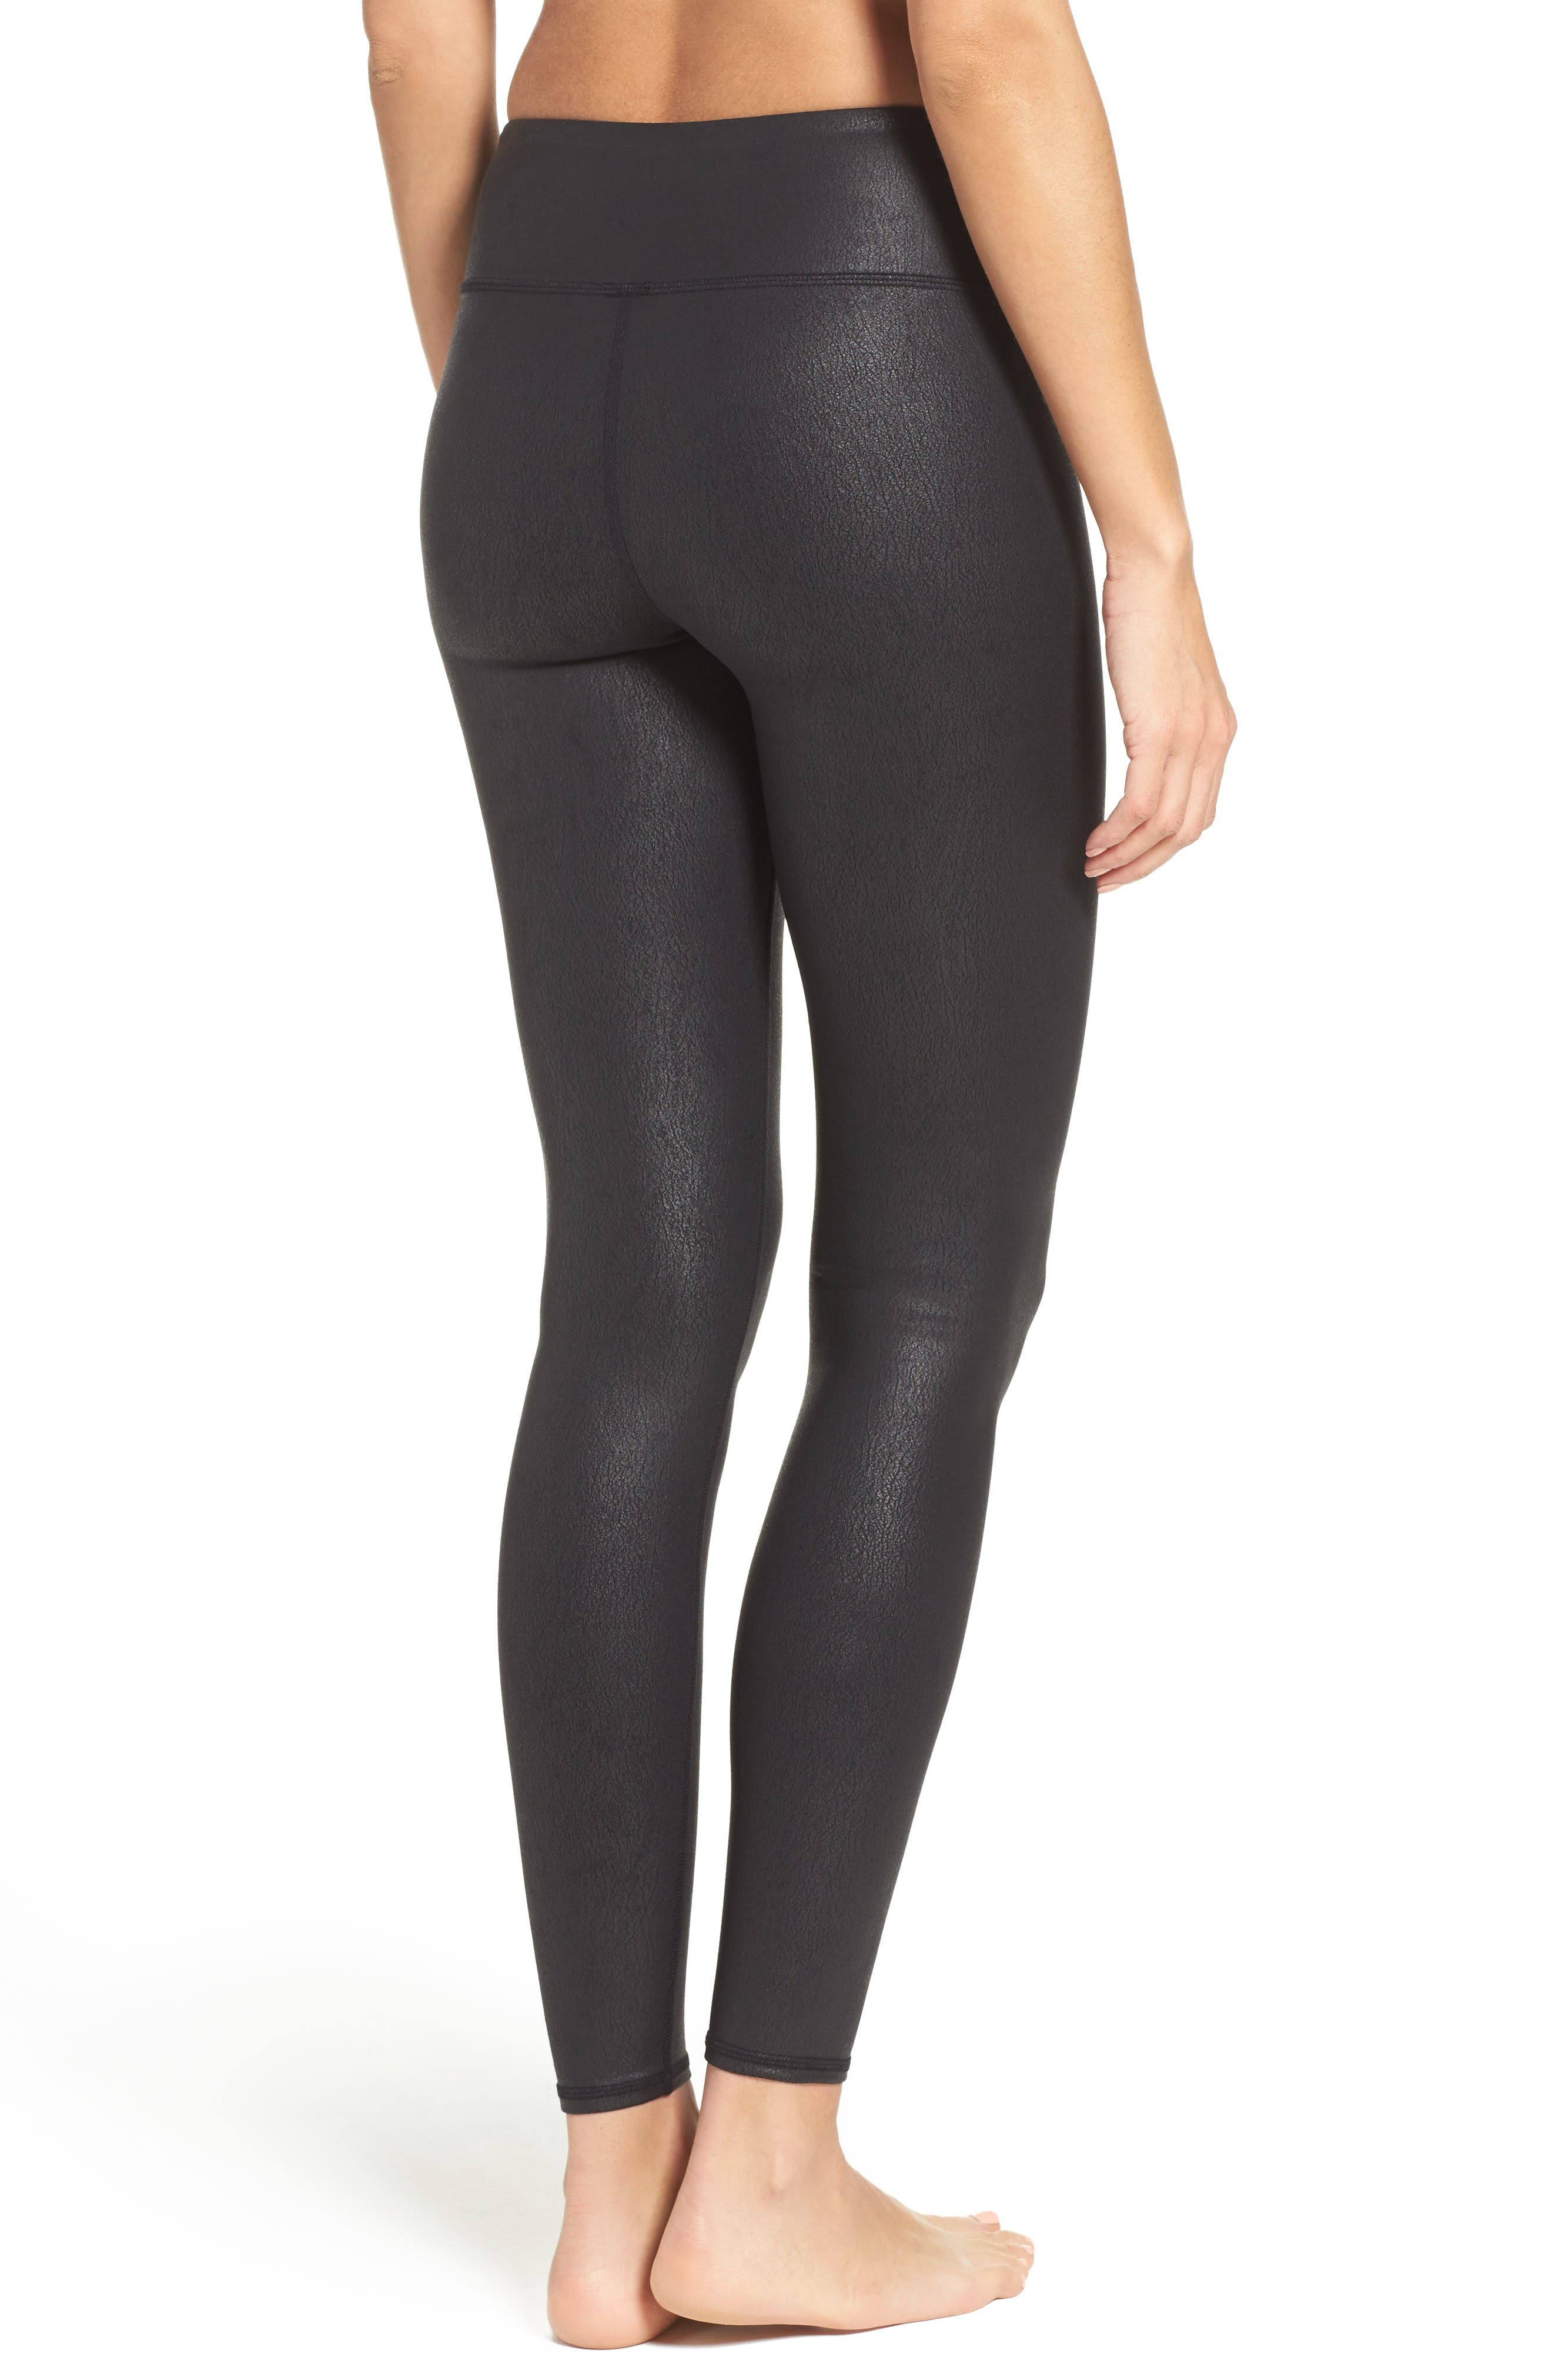 'Airbrushed' Leggings,                             Alternate thumbnail 2, color,                             Black Performance Leather